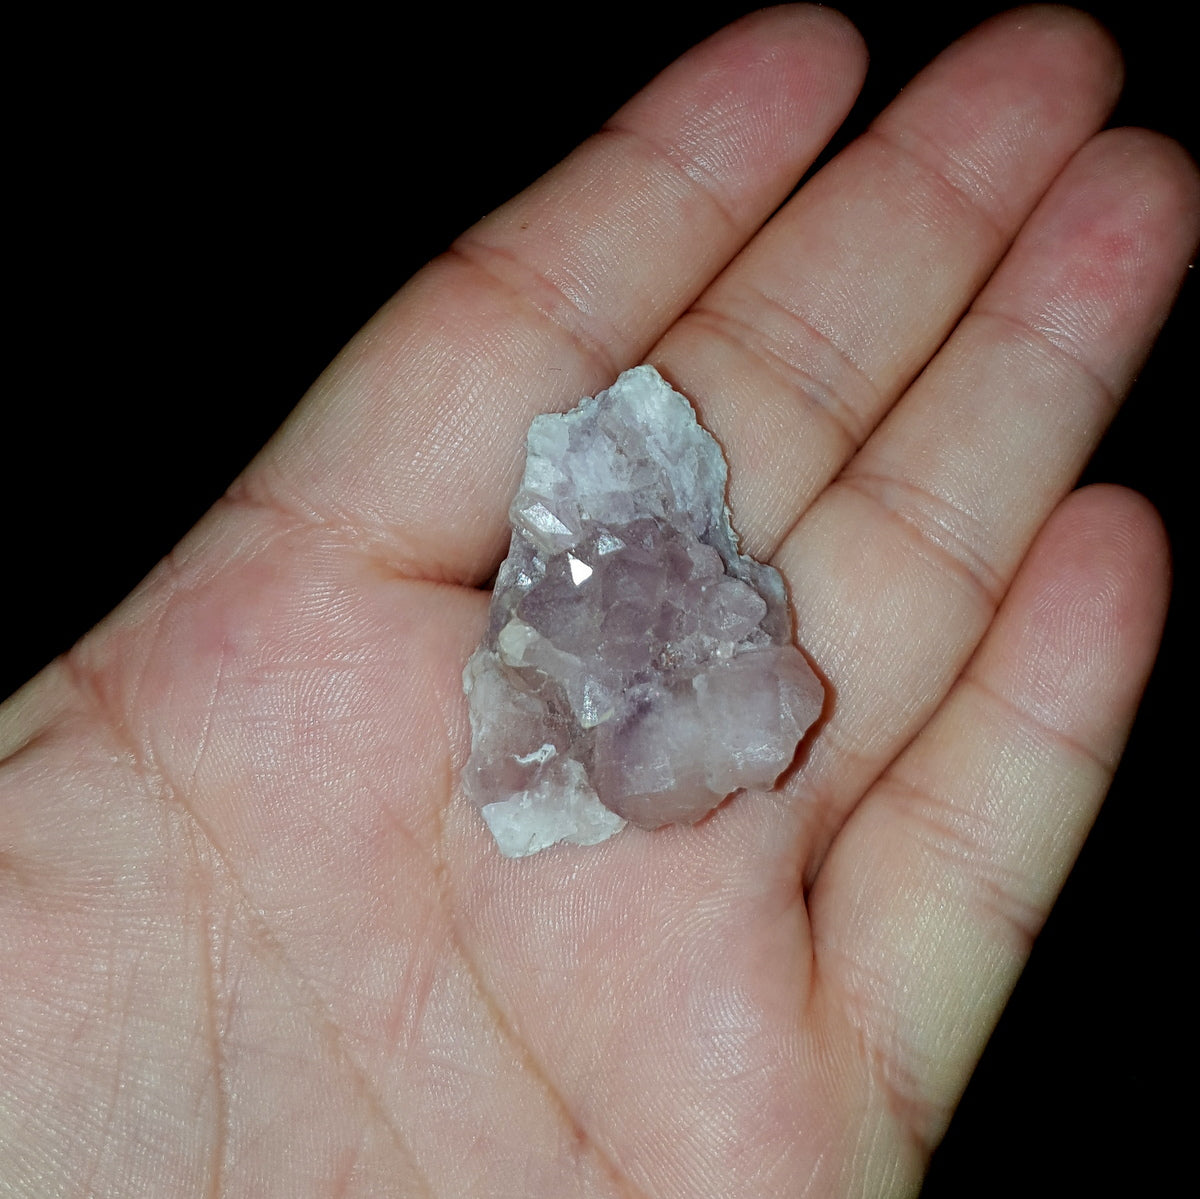 Pink Amethyst Geode Cluster - Now at Illiom Crystals - Afterpay Available